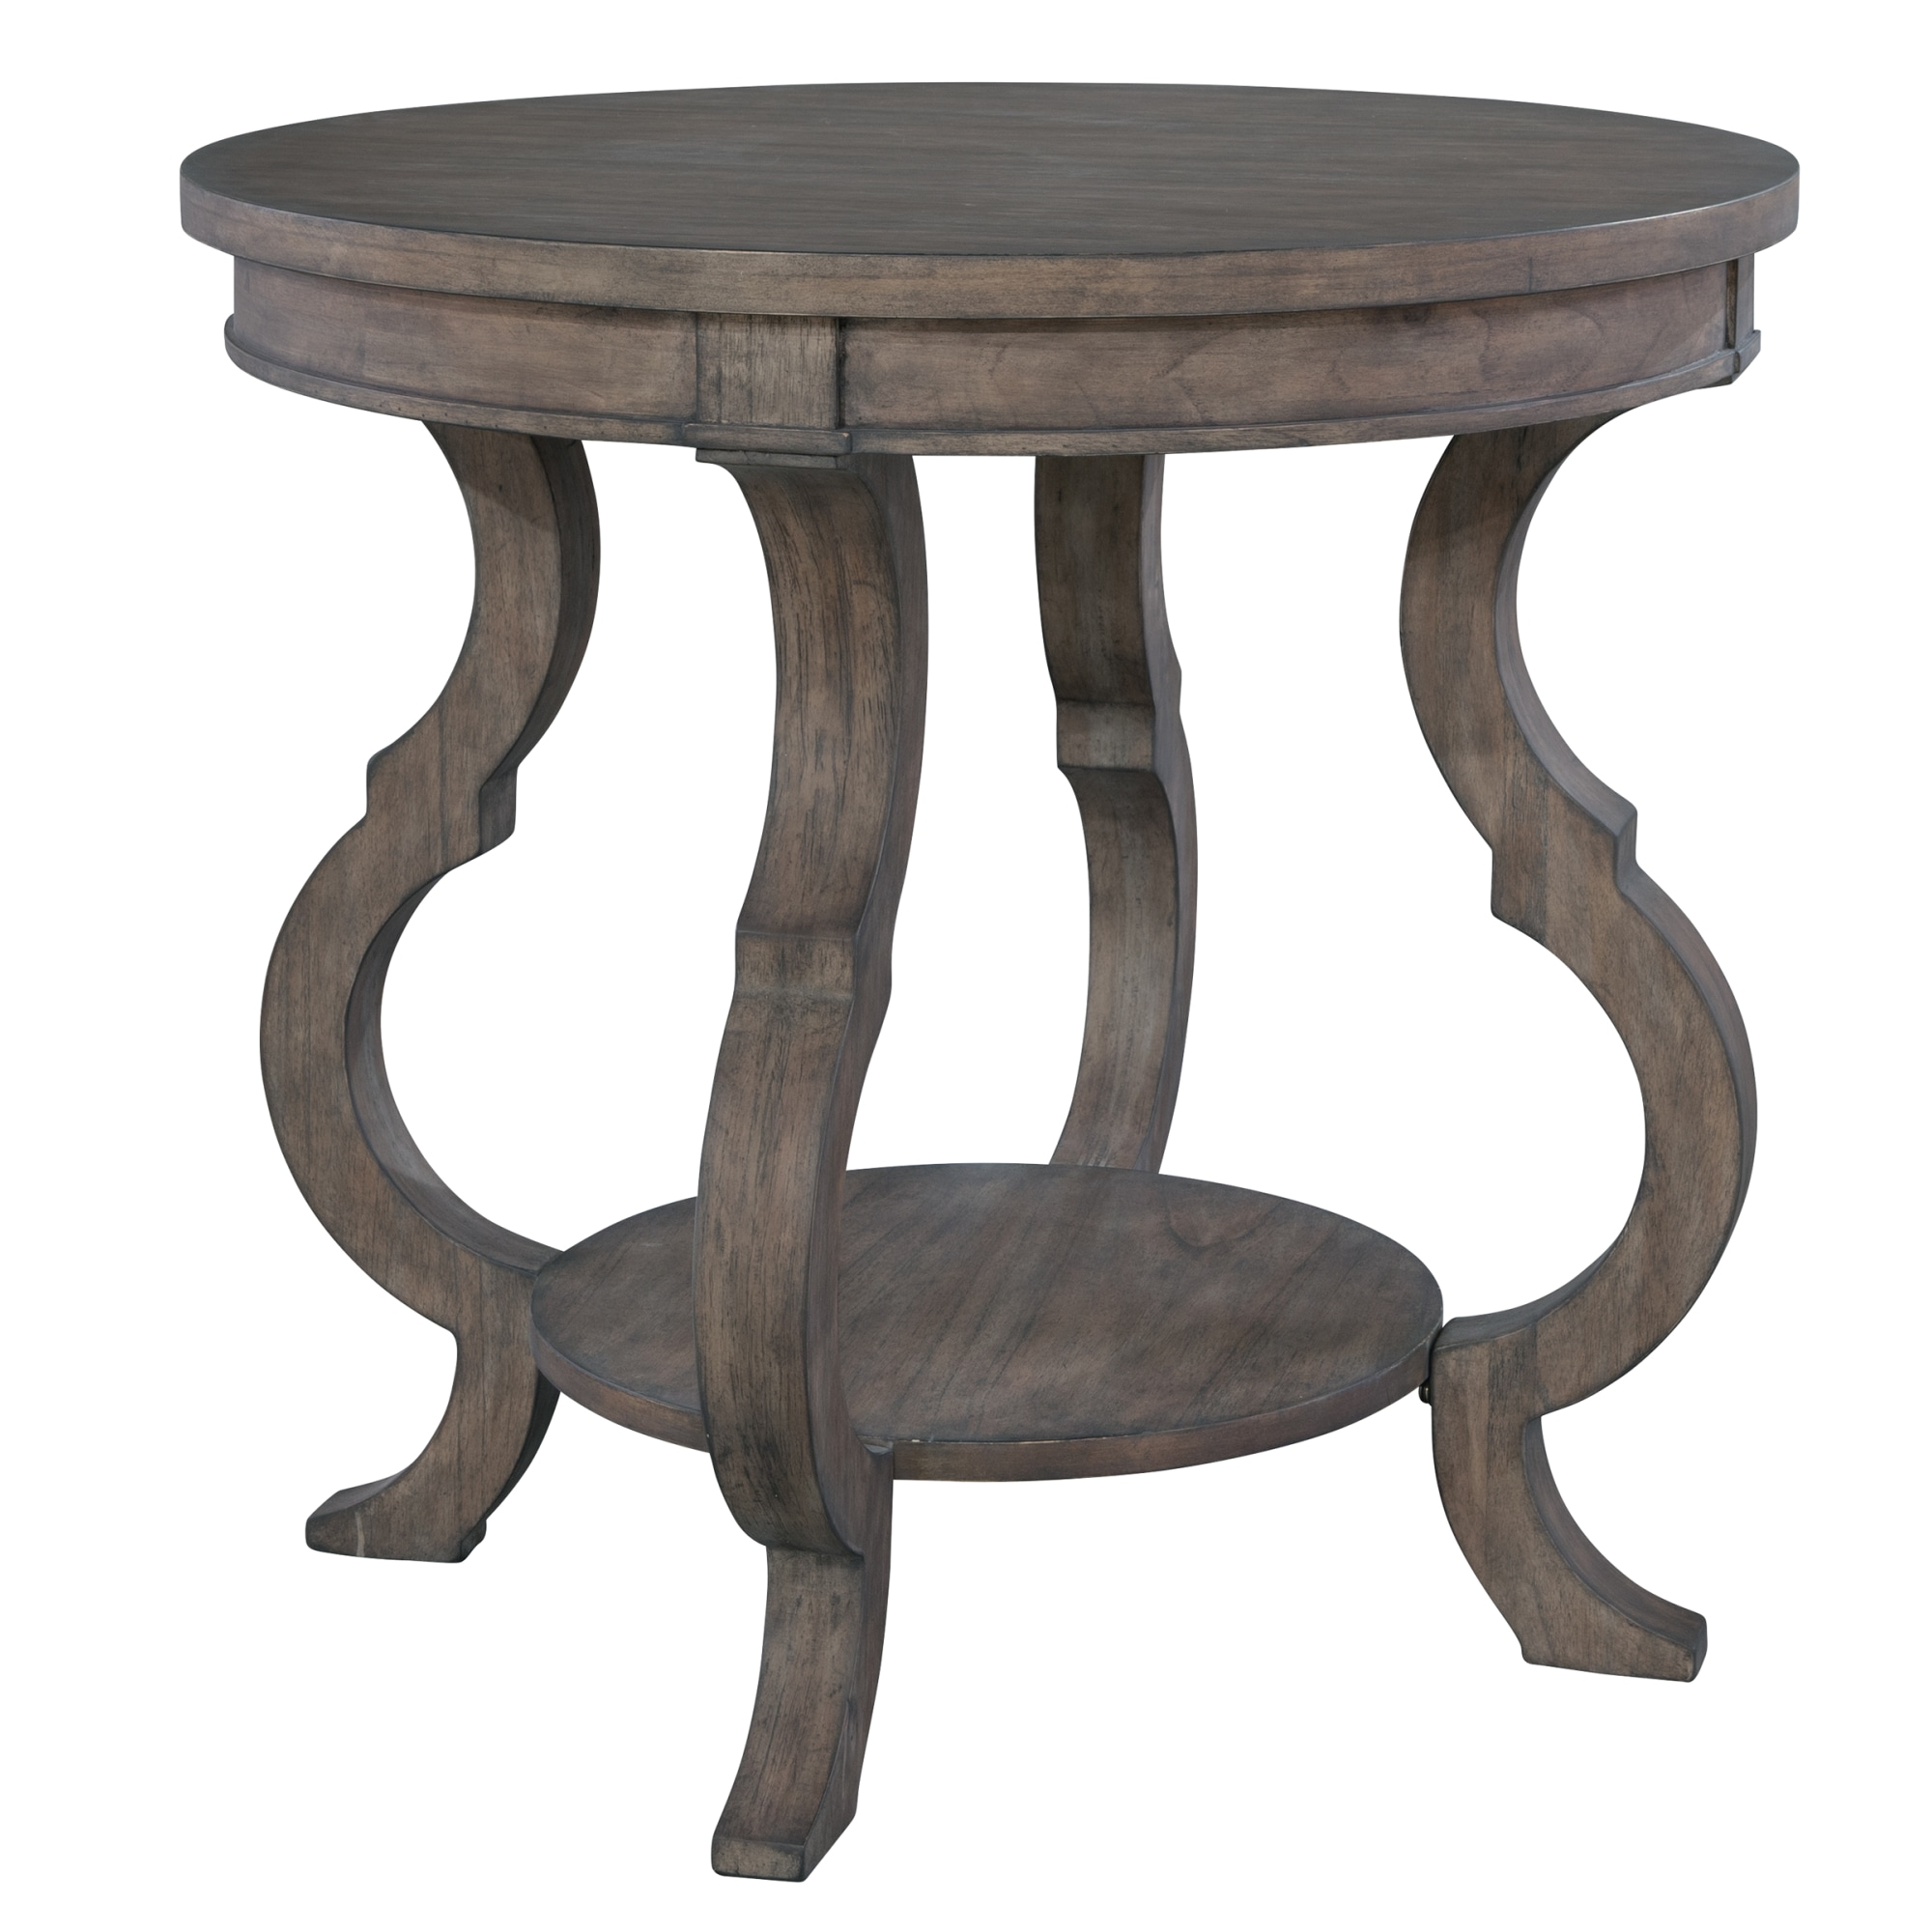 Image for 2-3506 Lincoln Park Round Lamp Table with Shaped Legs from Hekman Official Website